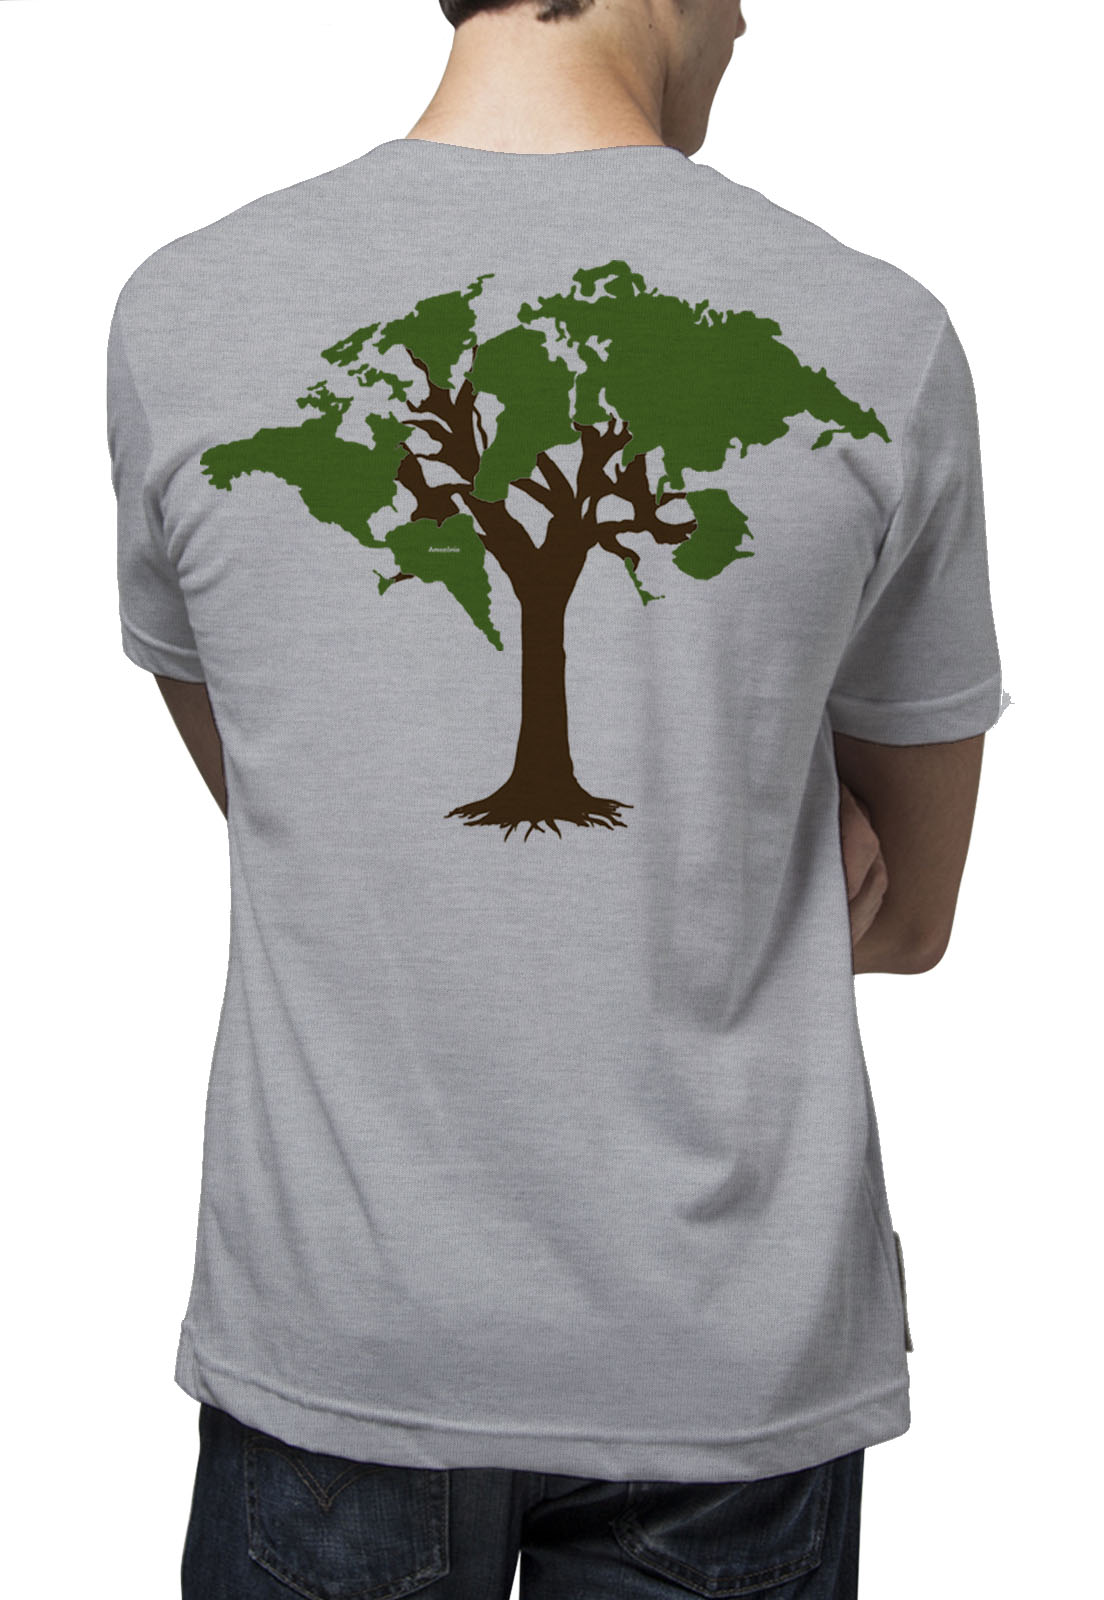 Camiseta Amazônia World Tree - Mescla Claro